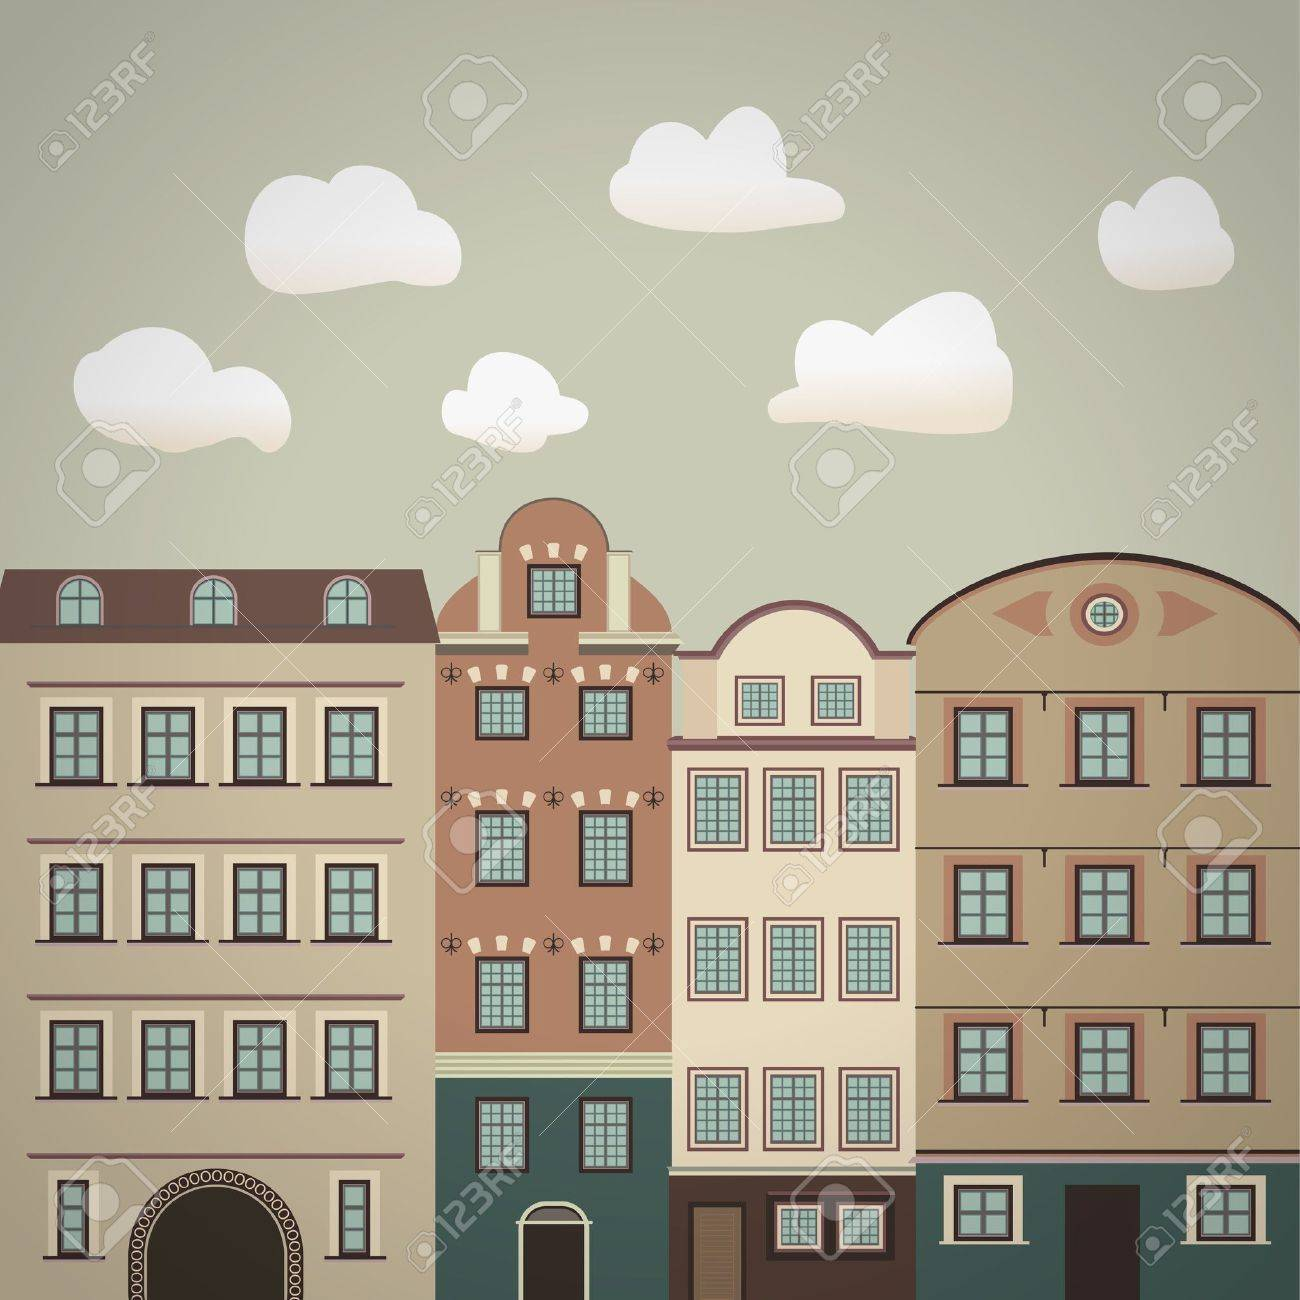 old town vintage illustration Stock Vector - 18165984